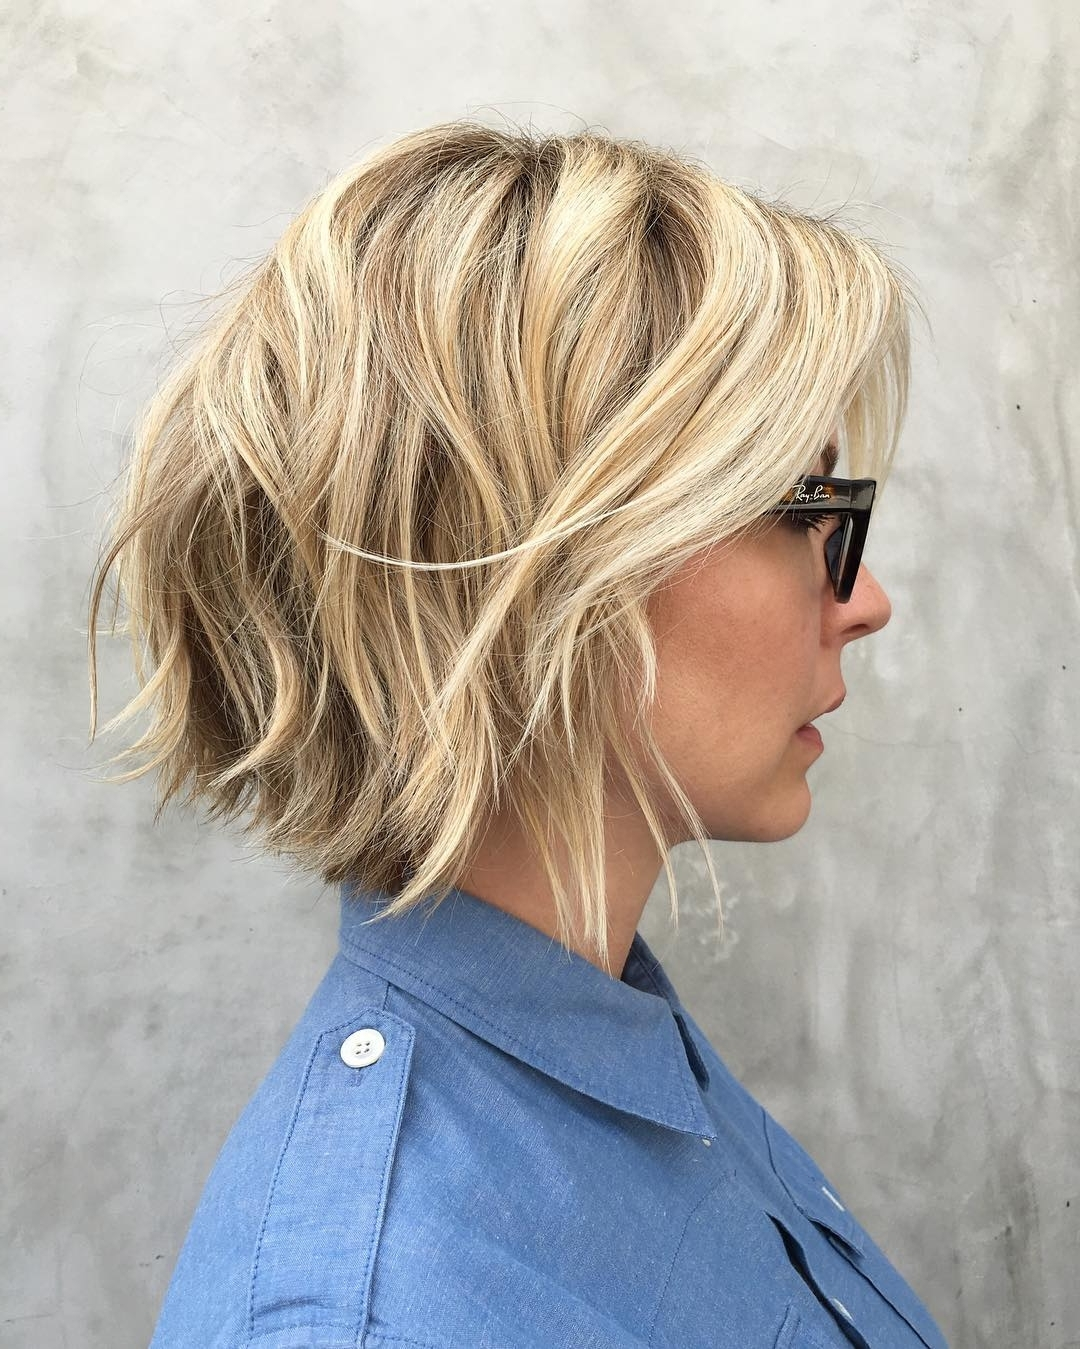 30 Trendiest Shaggy Bob Haircuts Of The Season In Most Current Shaggy Crop Hairstyles (View 5 of 15)